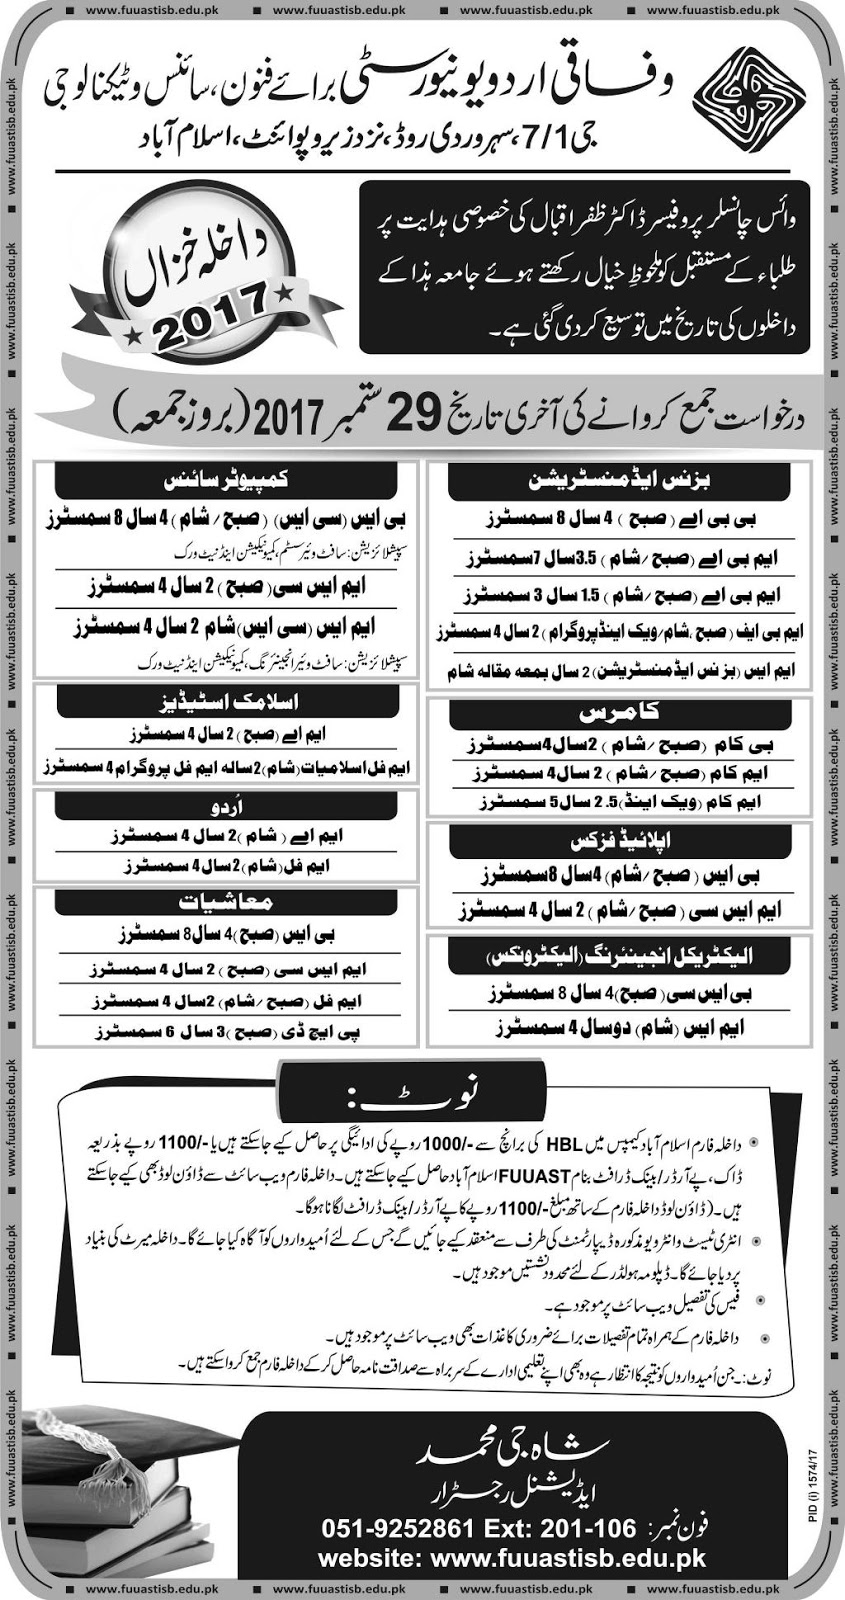 Admissions Open in Federal Urdu University of Arts Science and Technology Islamabad - 2017